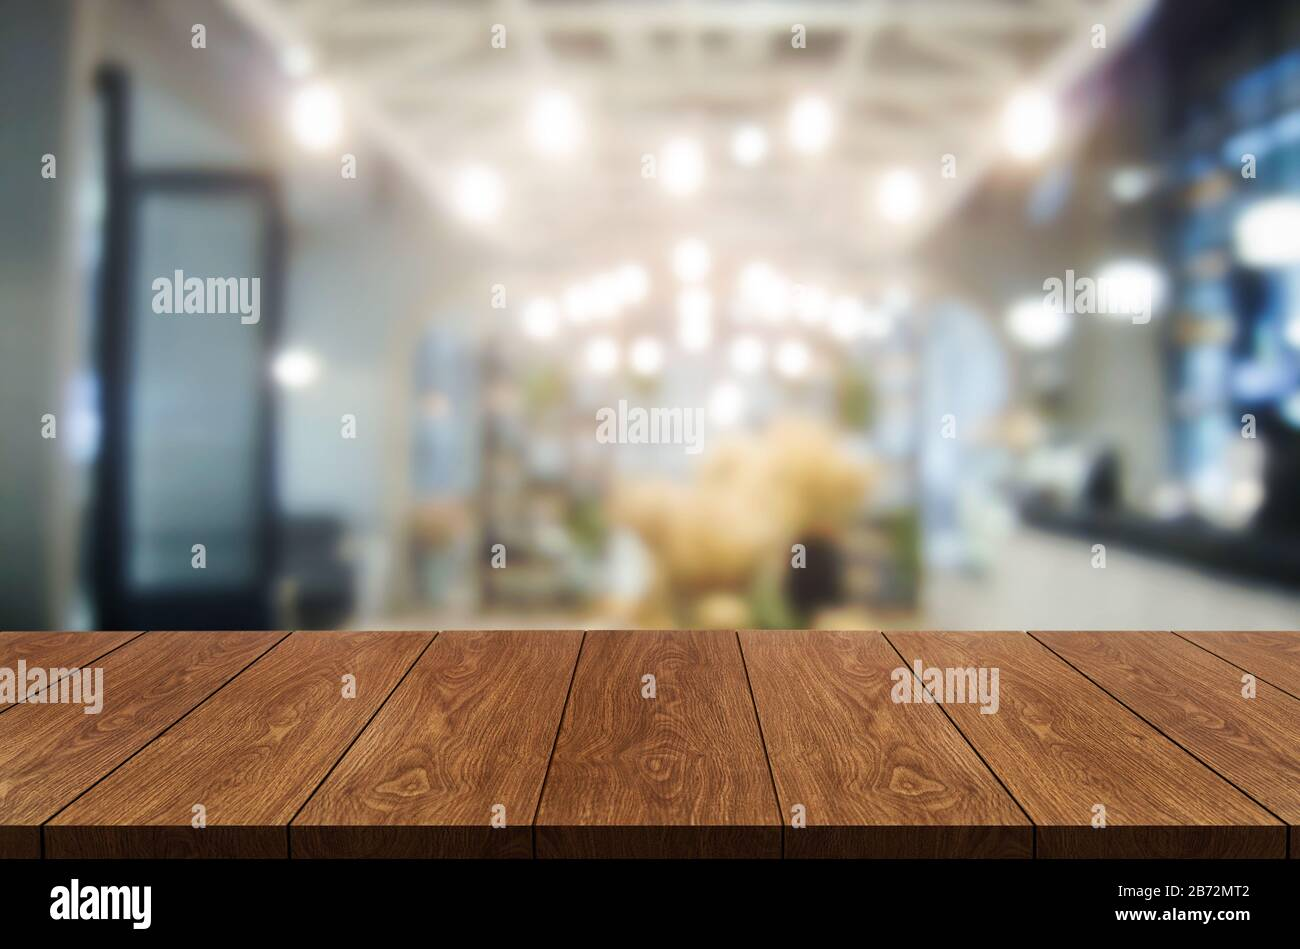 Wood Table In Blurry Background Of Modern Restaurant Room Or Coffee Shop With Empty Copy Space On The Table For Product Display Mockup Interior Resta Stock Photo Alamy